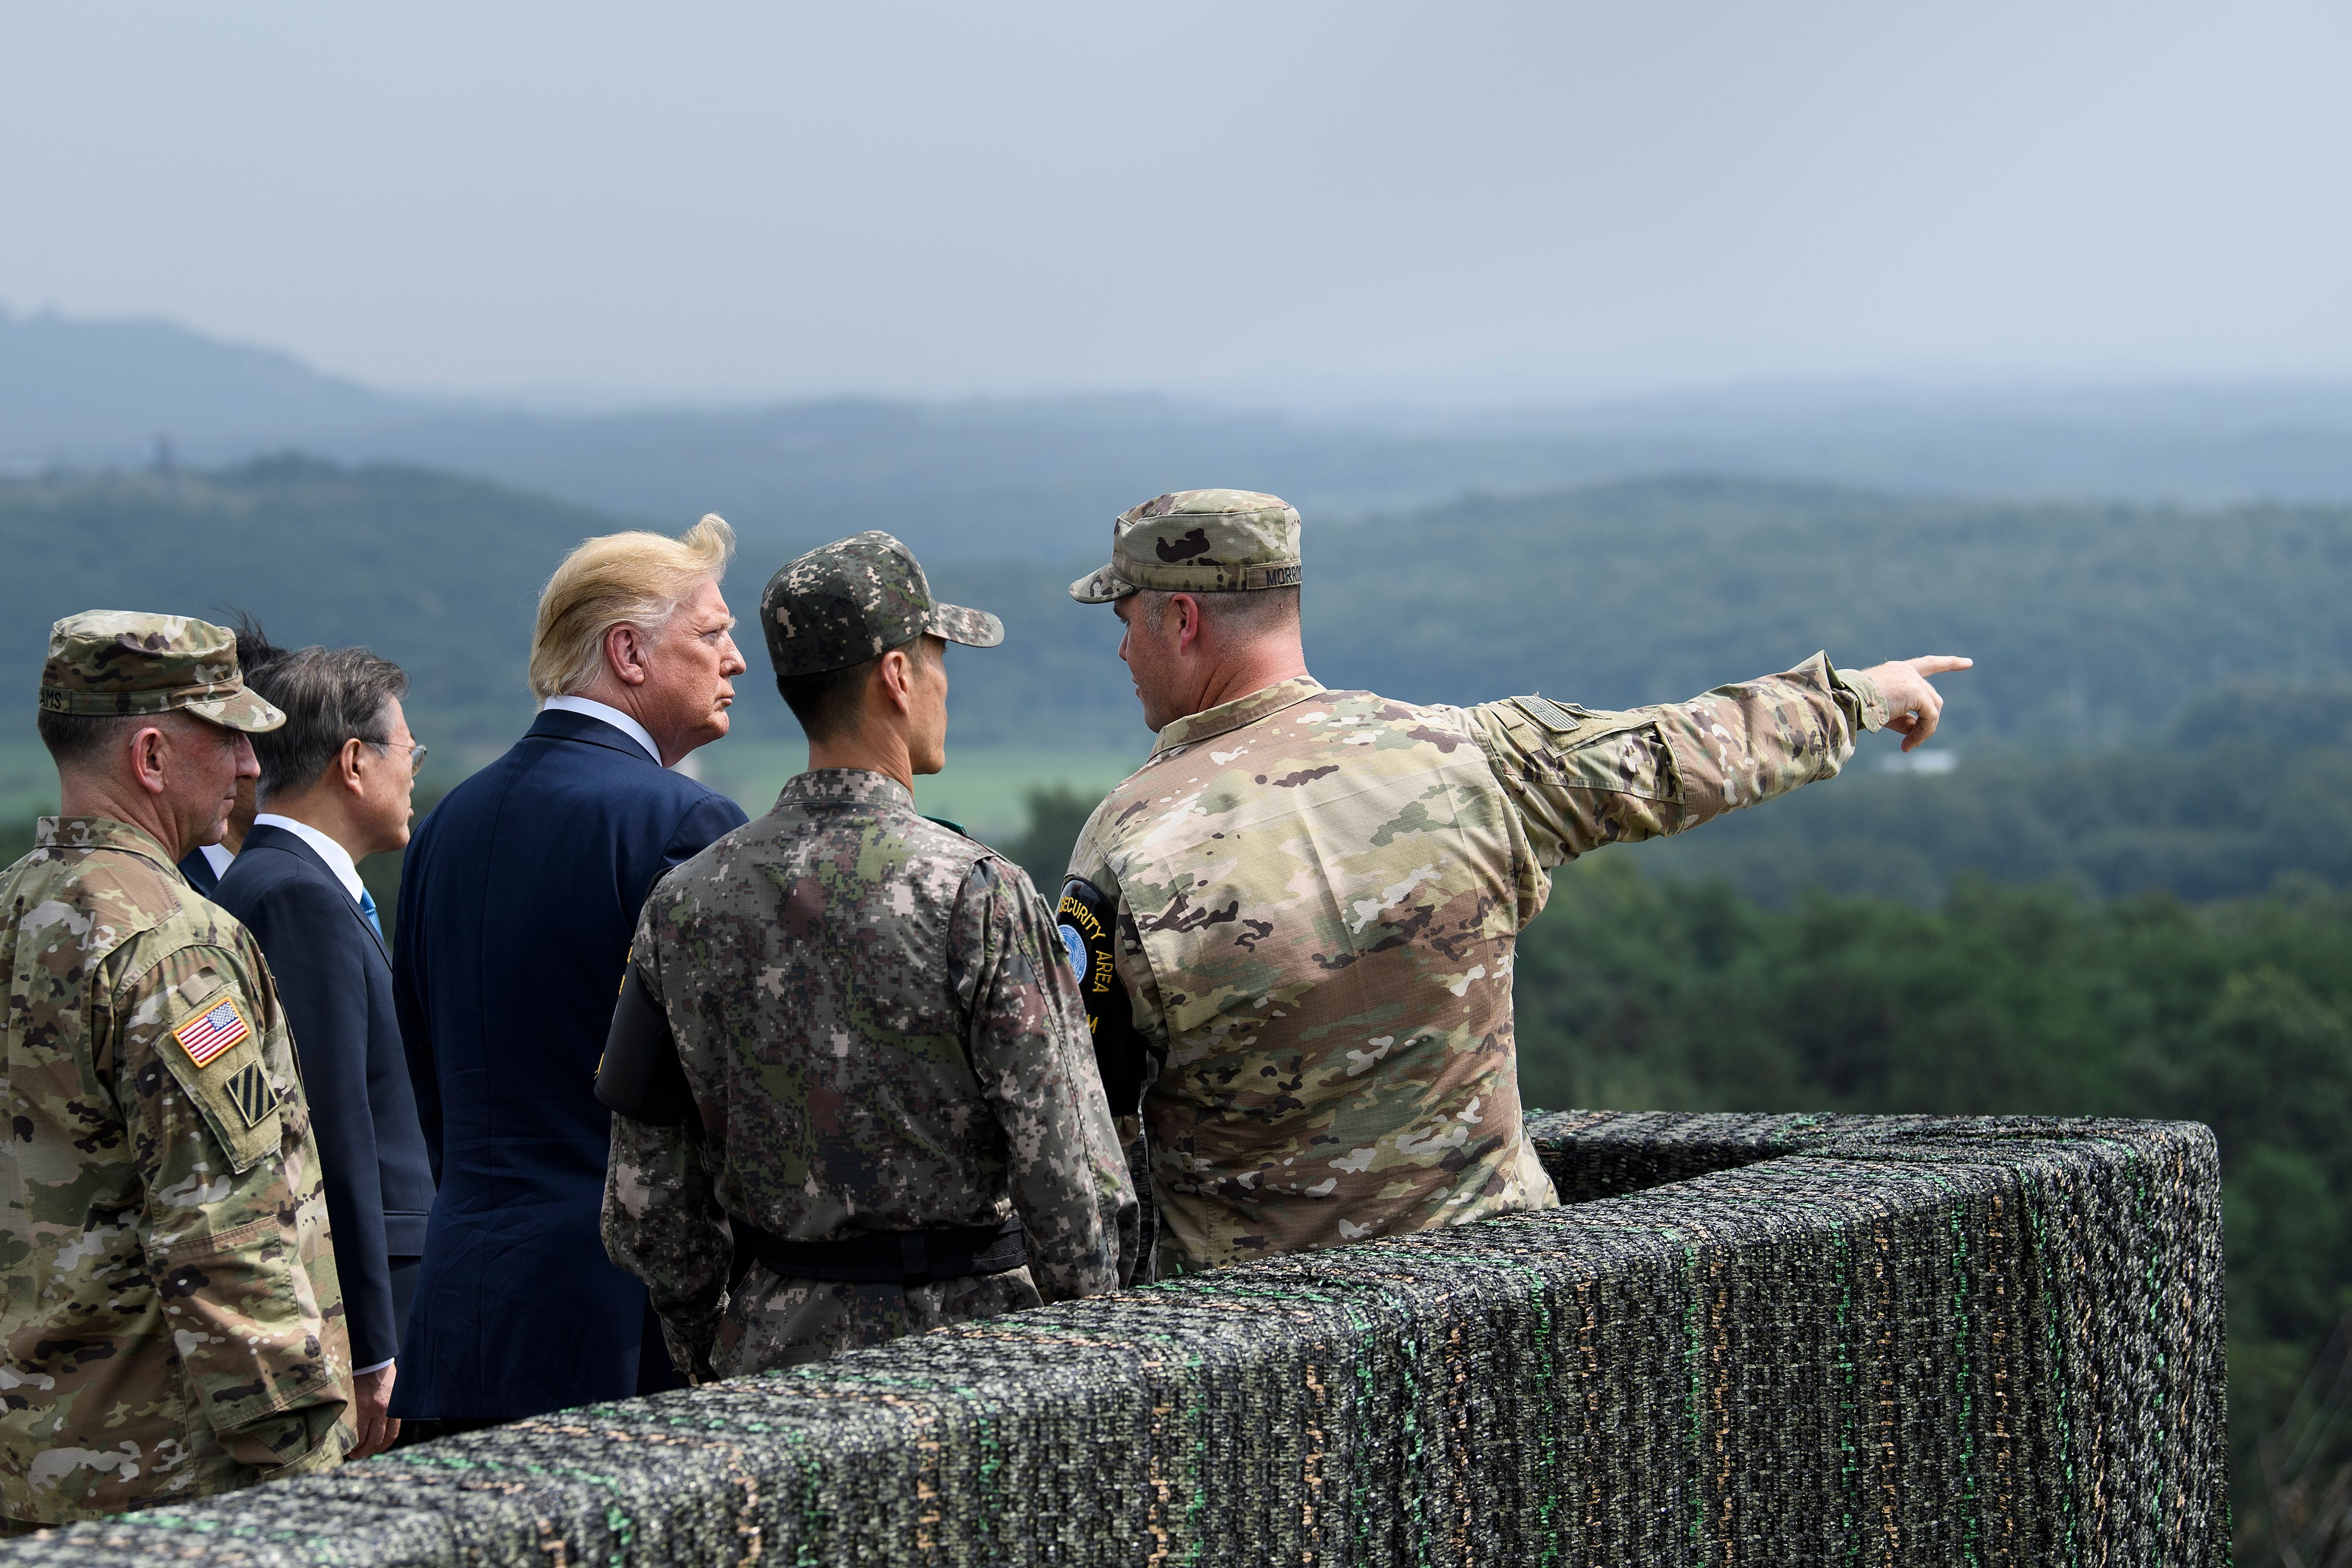 US President Donald Trump (C) and South Korean President Moon Jae-in (2nd L, obscured) visit an observation post in the Joint Security Area (JSA) at Panmunjom in the Demilitarized Zone (DMZ) separating North and South Korea on June 30, 2019. (Photo by BRENDAN SMIALOWSKI/AFP/Getty Images)